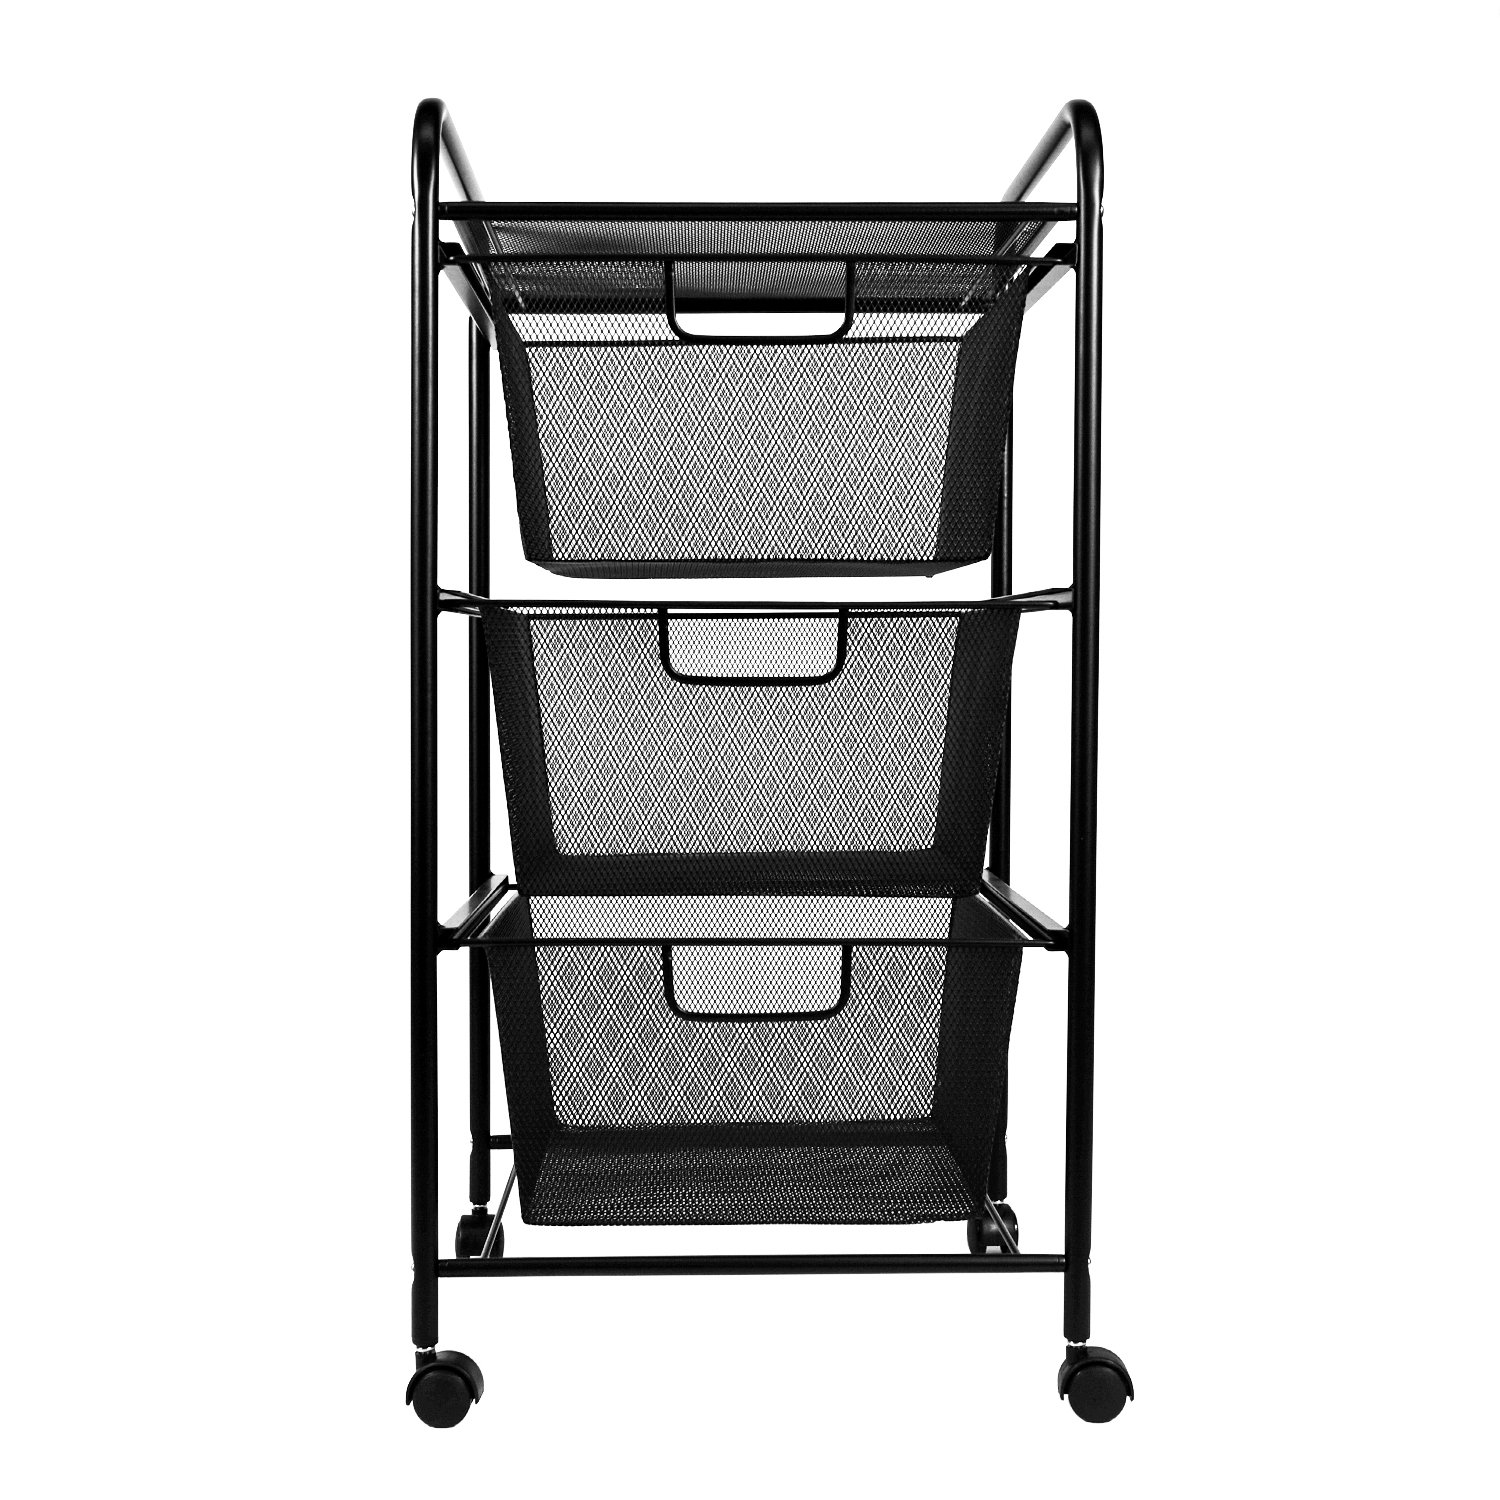 YIMU 3 Tier Metal Mesh Cart with 3 Drawers, Office& Kitchen Storage with Rolling Wheels, Black